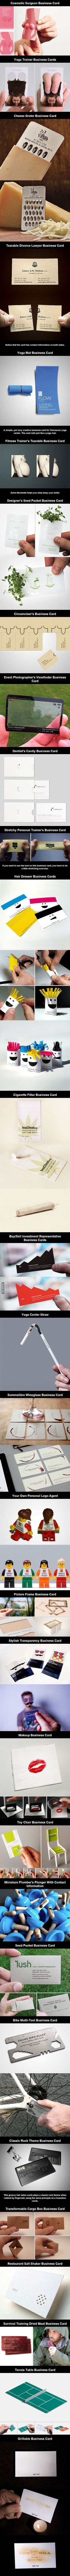 30 Of The Most Creative Business Cards Ever.